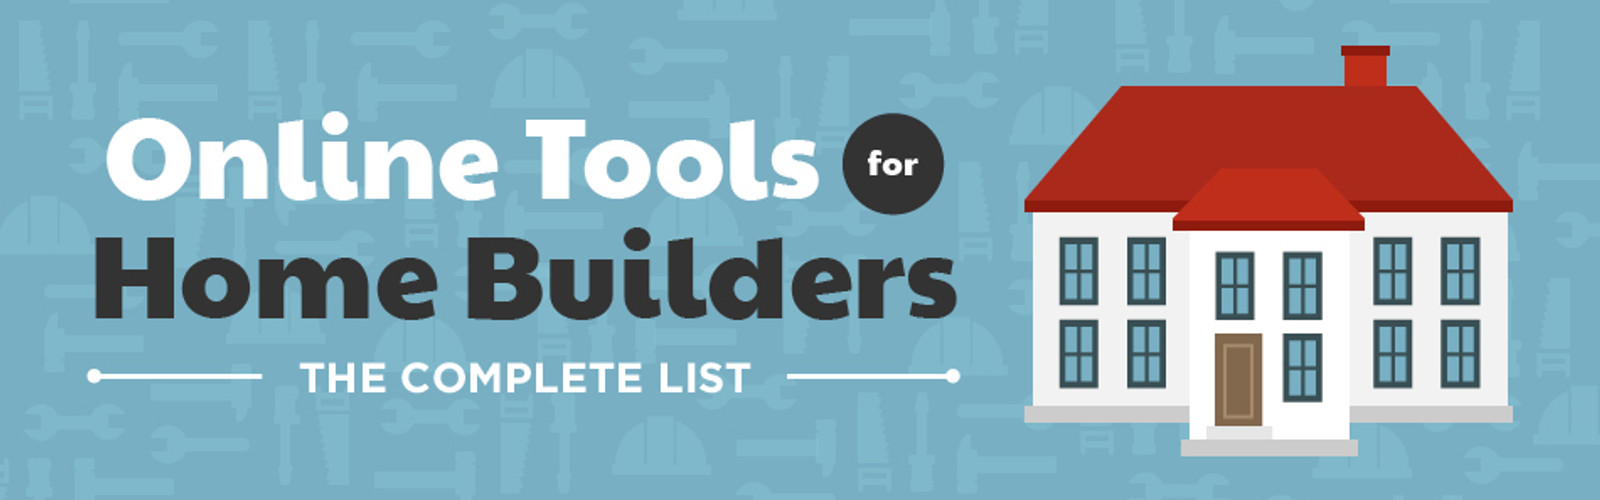 Online 20 Tools 20for 20 Home 20 Builders